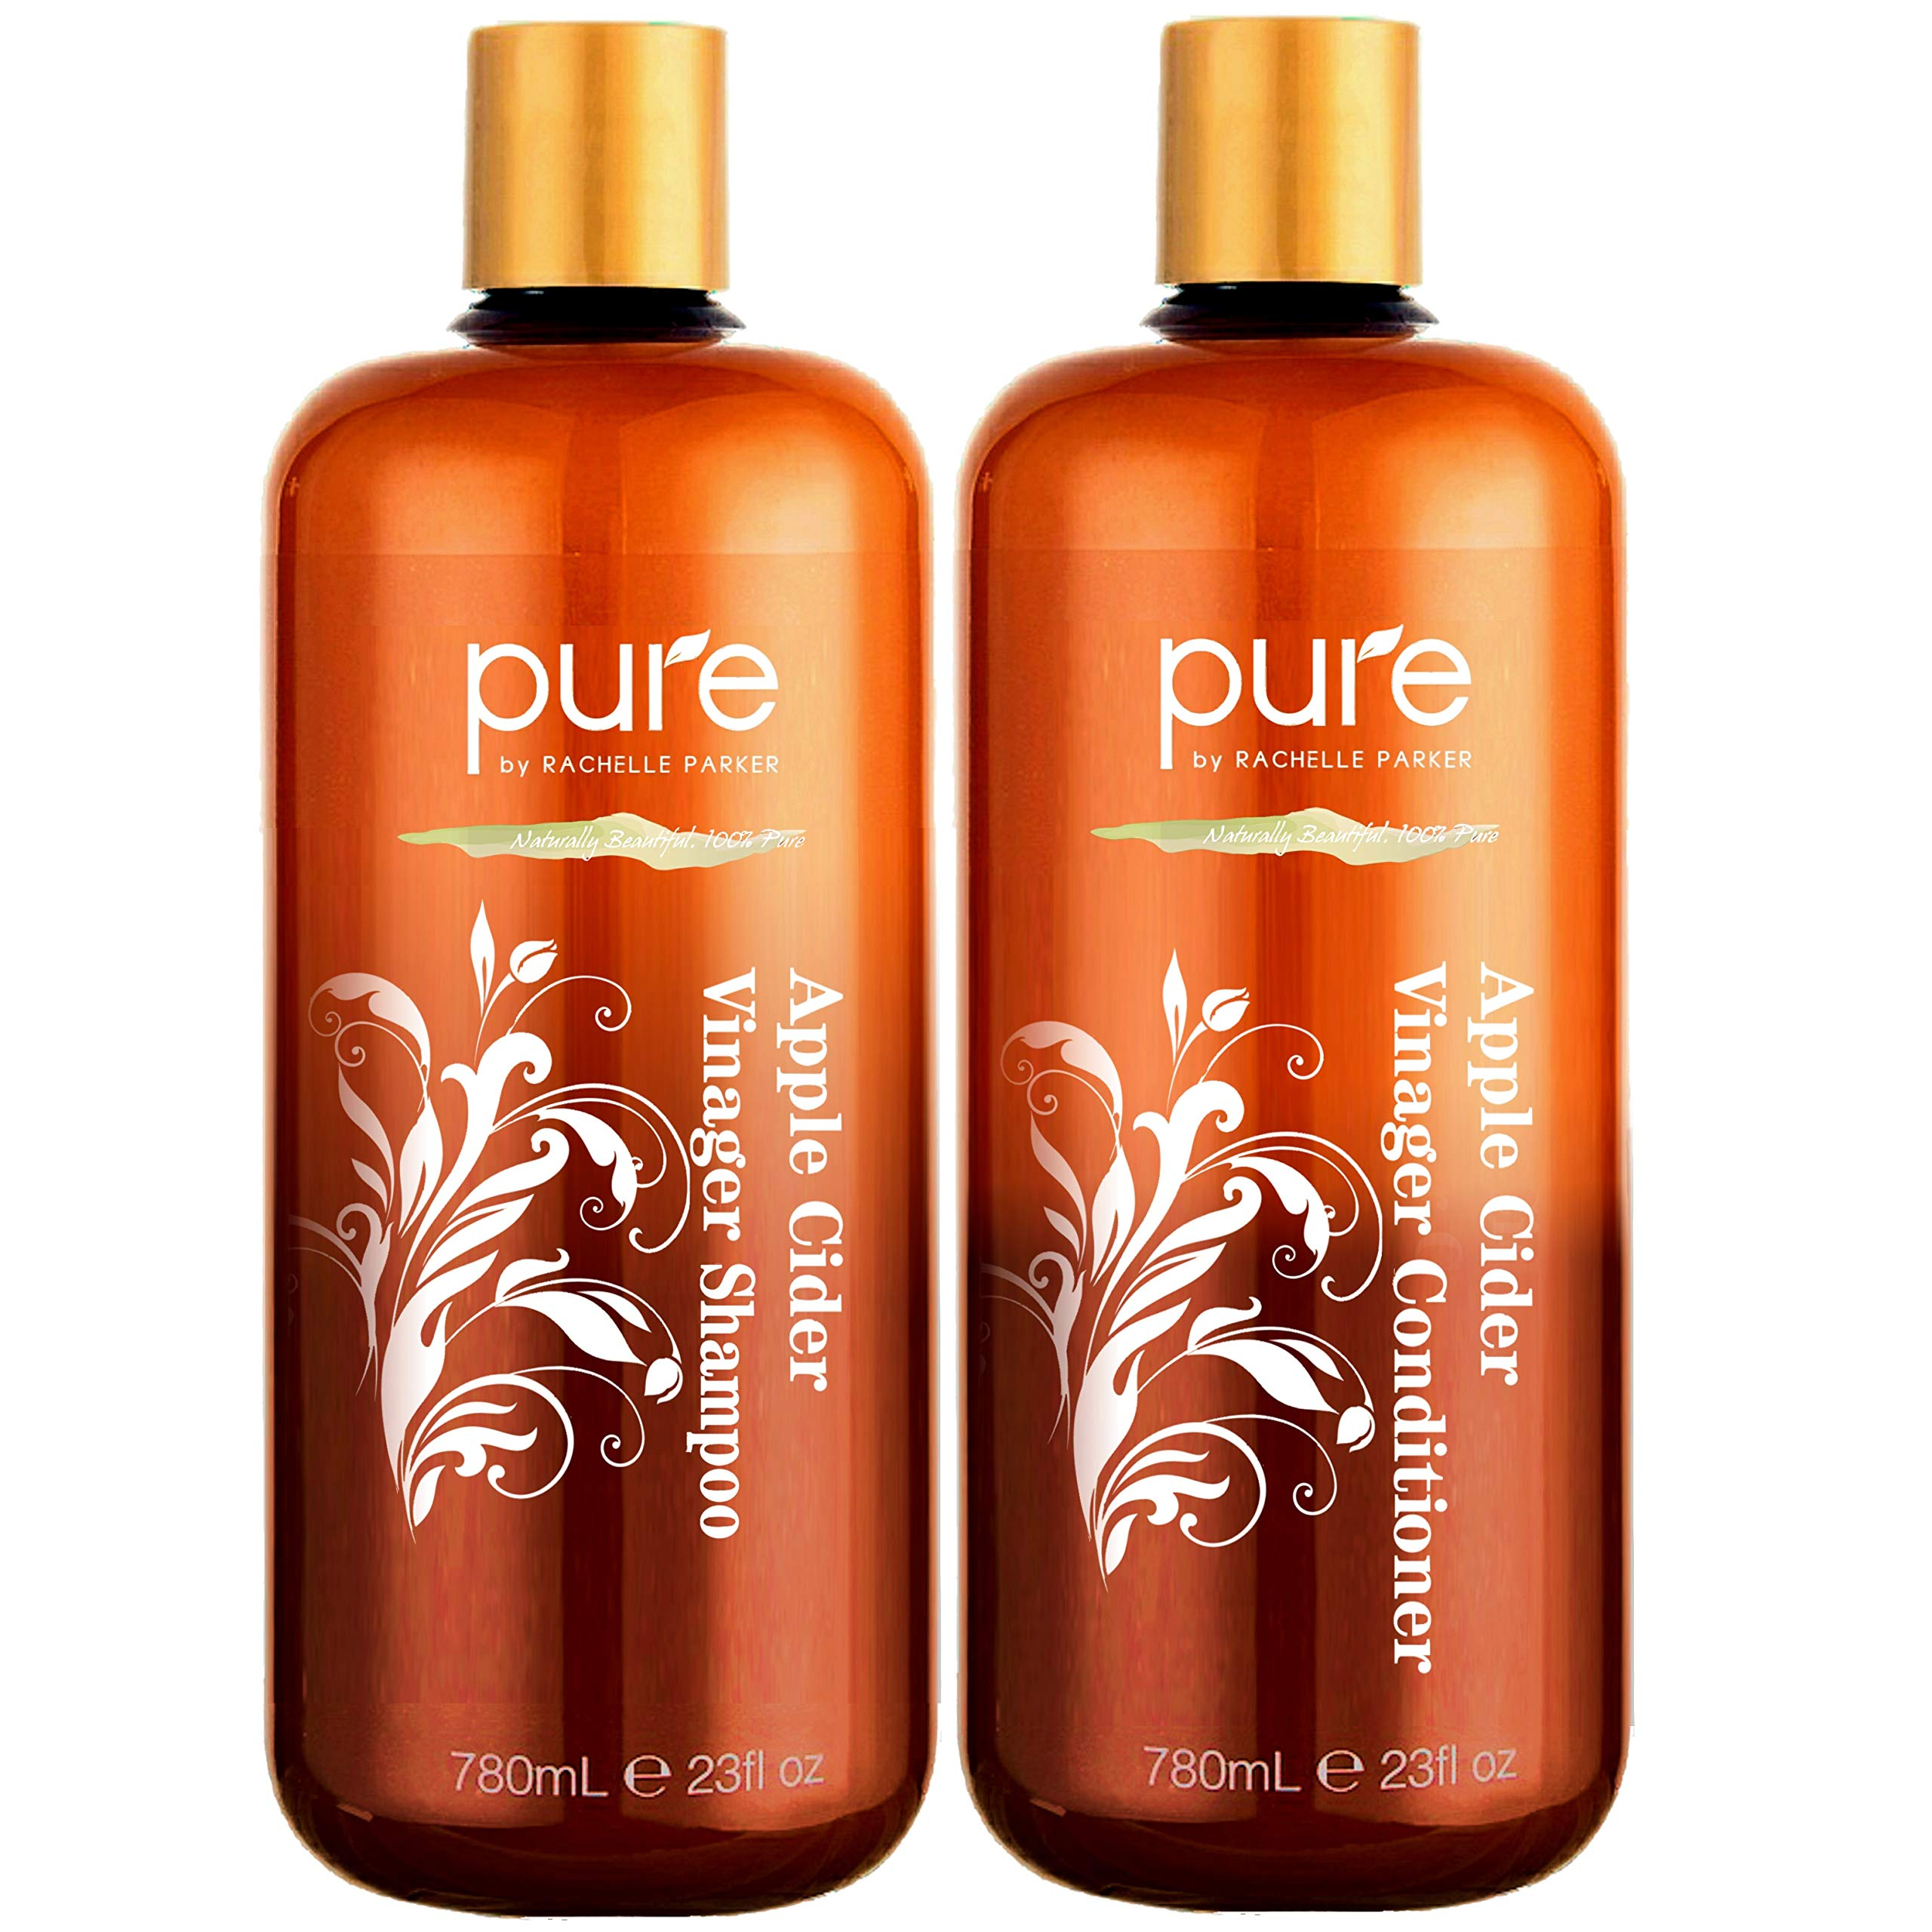 Apple Cider Vinegar Shampoo and Conditioner Set. Sulfate Free Shampoo Conditioner Set for Damaged, Oily Hair. Shampoo & Conditioner Combo Pack to Reduce Dandruff, Frizz, Split Ends, by Pure by Rachelle Parker